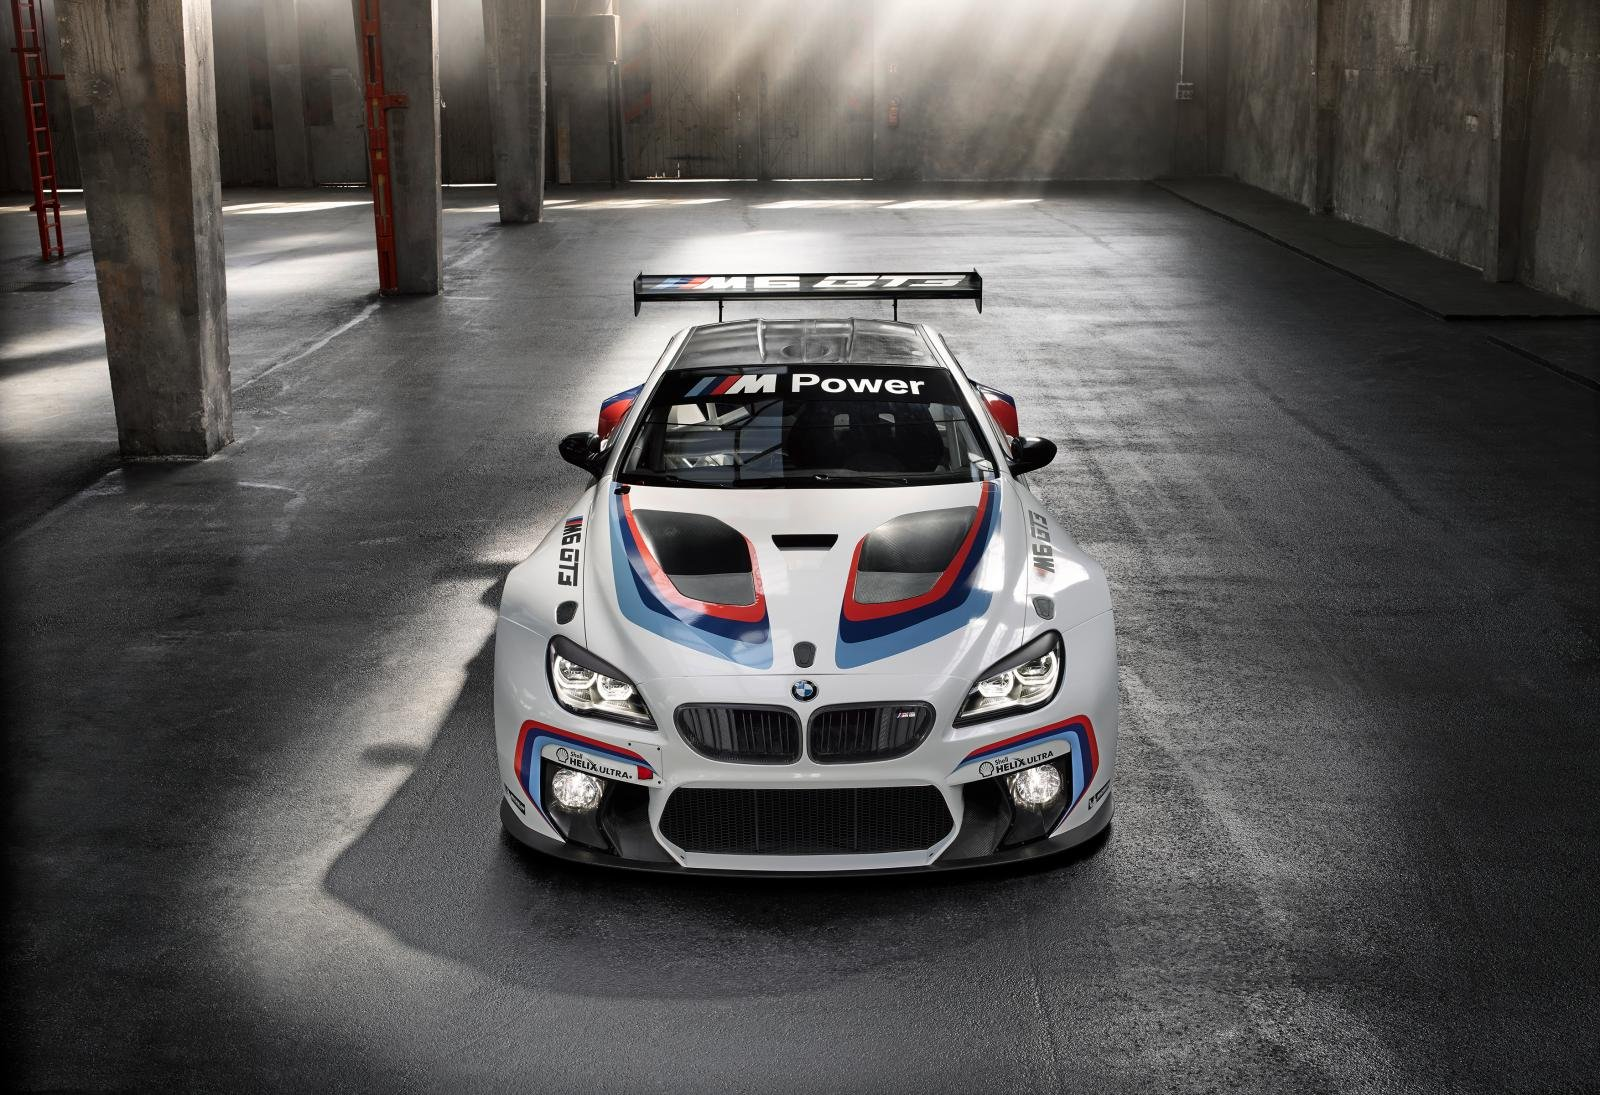 Bmw M6 Gt3 Coupe Cars Racecars 2016 Wallpaper 1600x1095